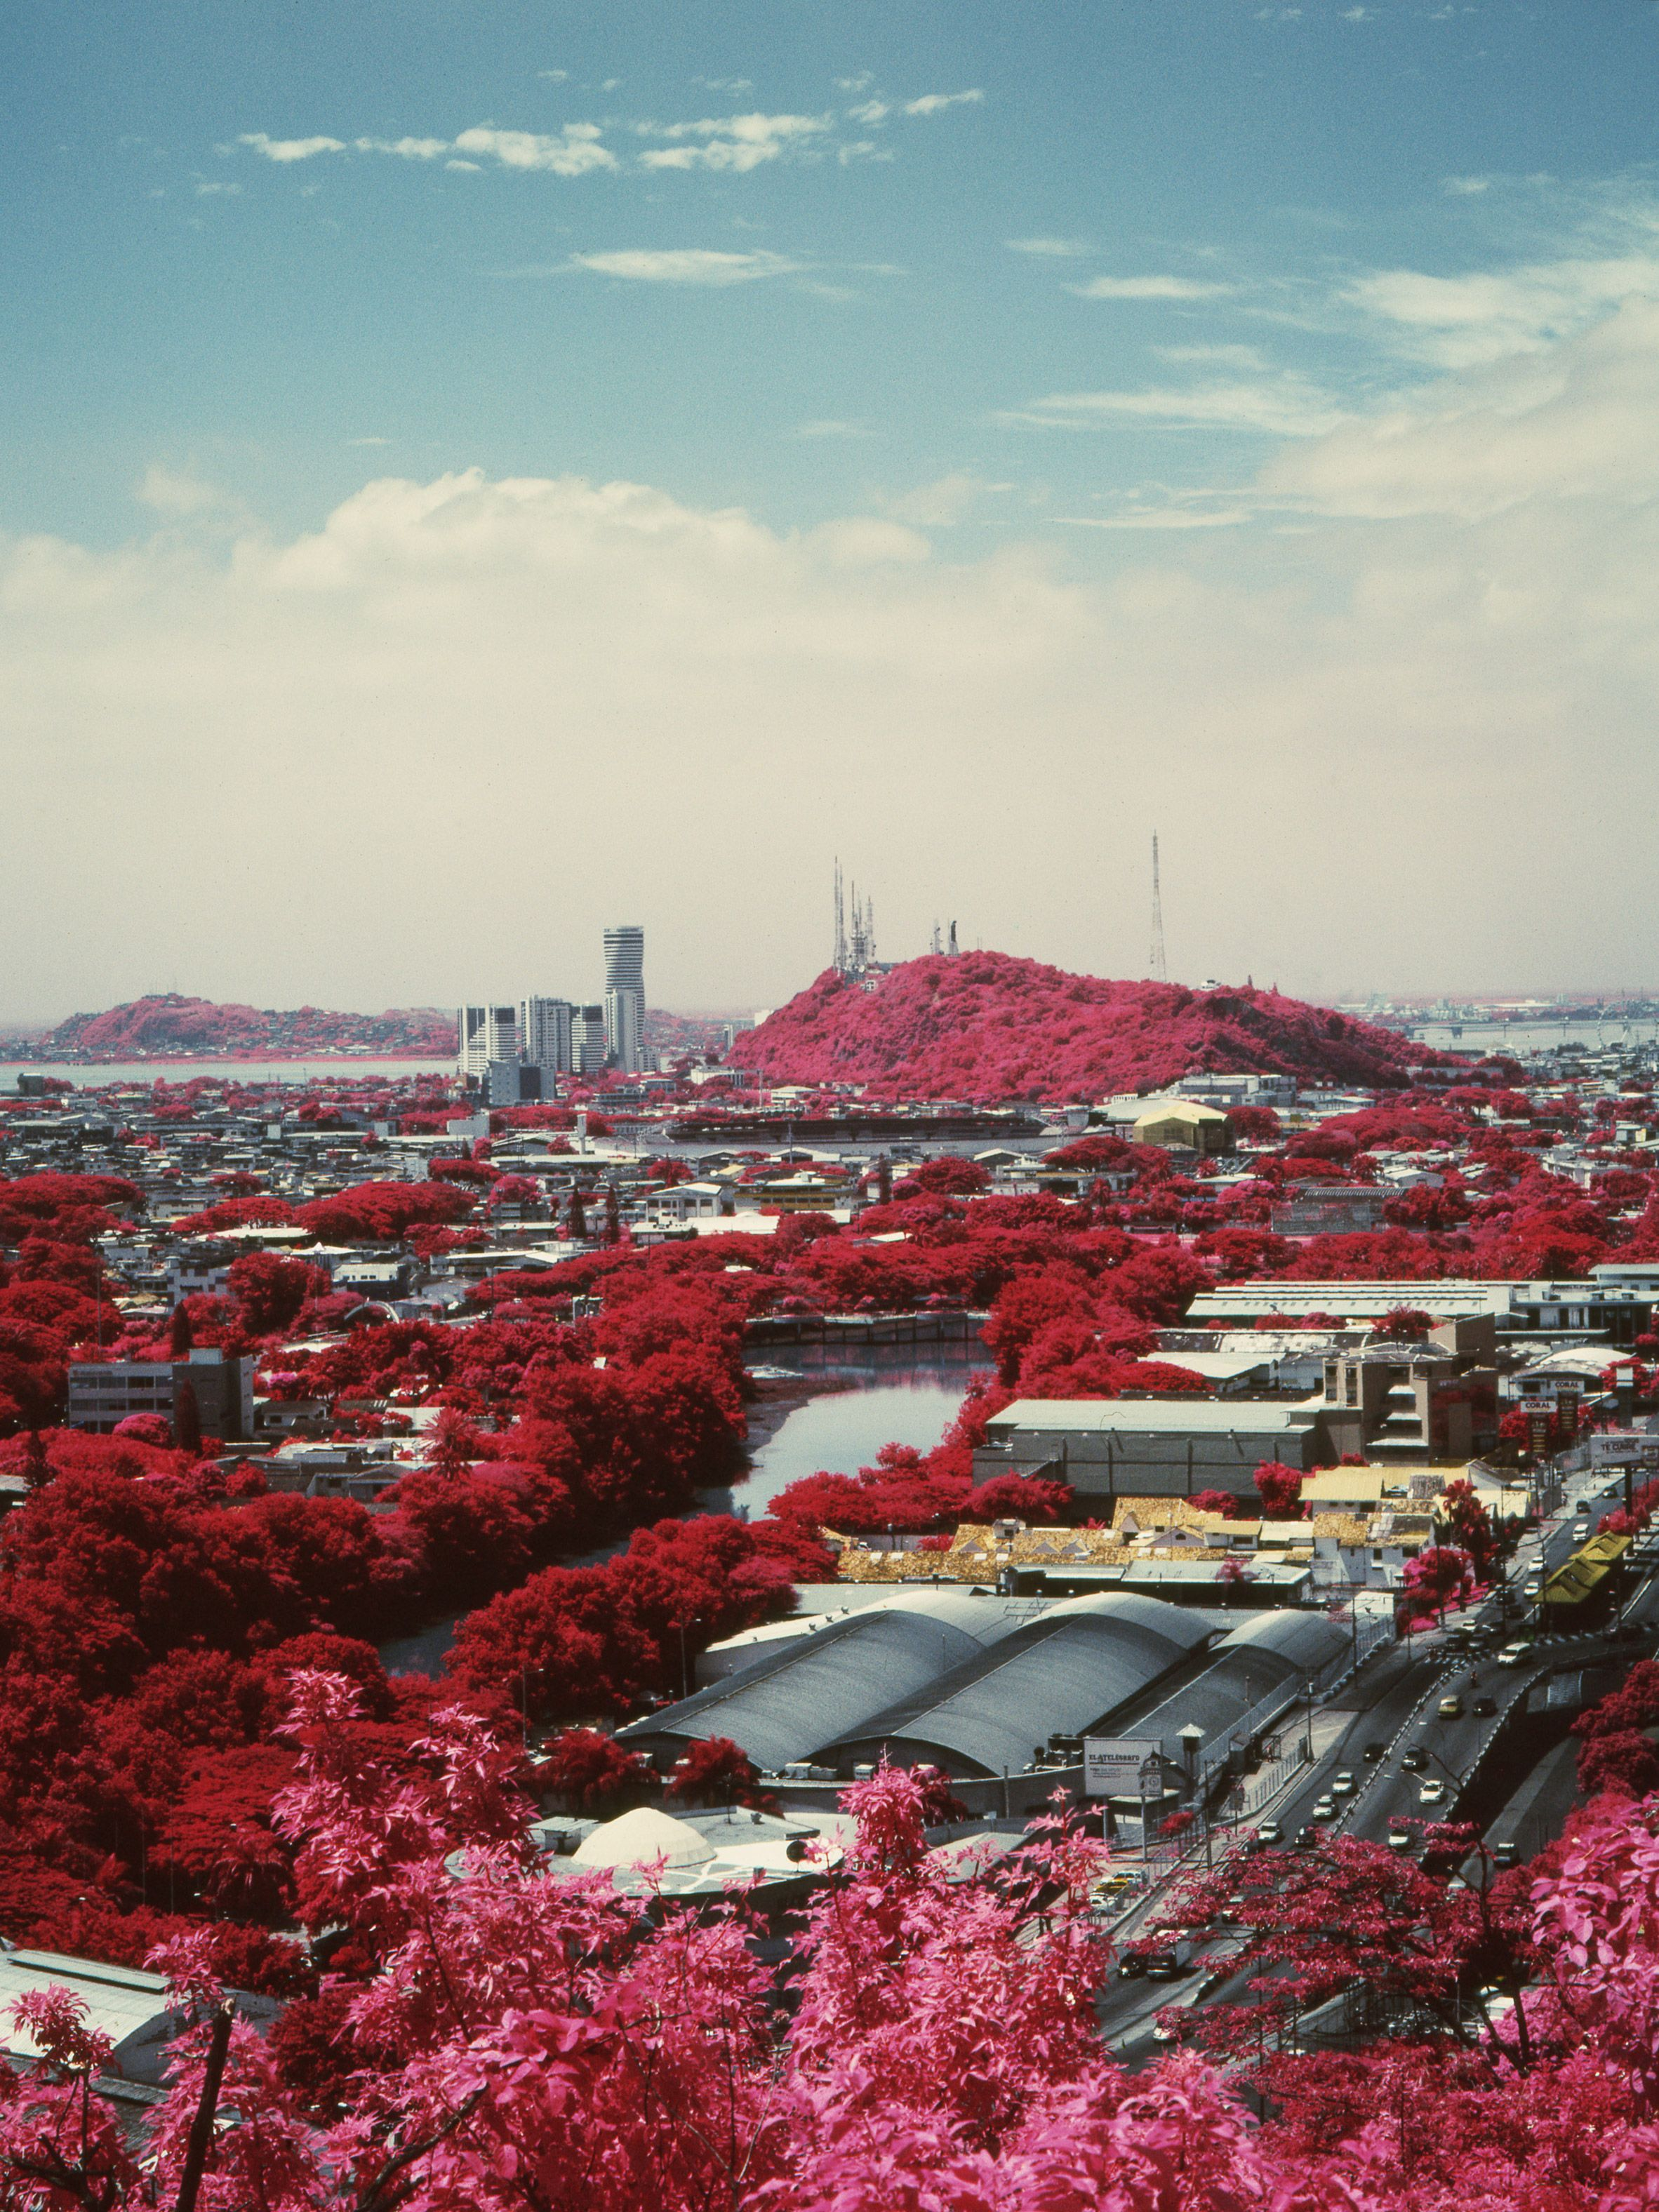 Vicente Munoz S Infrared Photos Highlight The Battle Between City And Nature Landscape Photography Tutorial Landscape Photography Infrared Photography